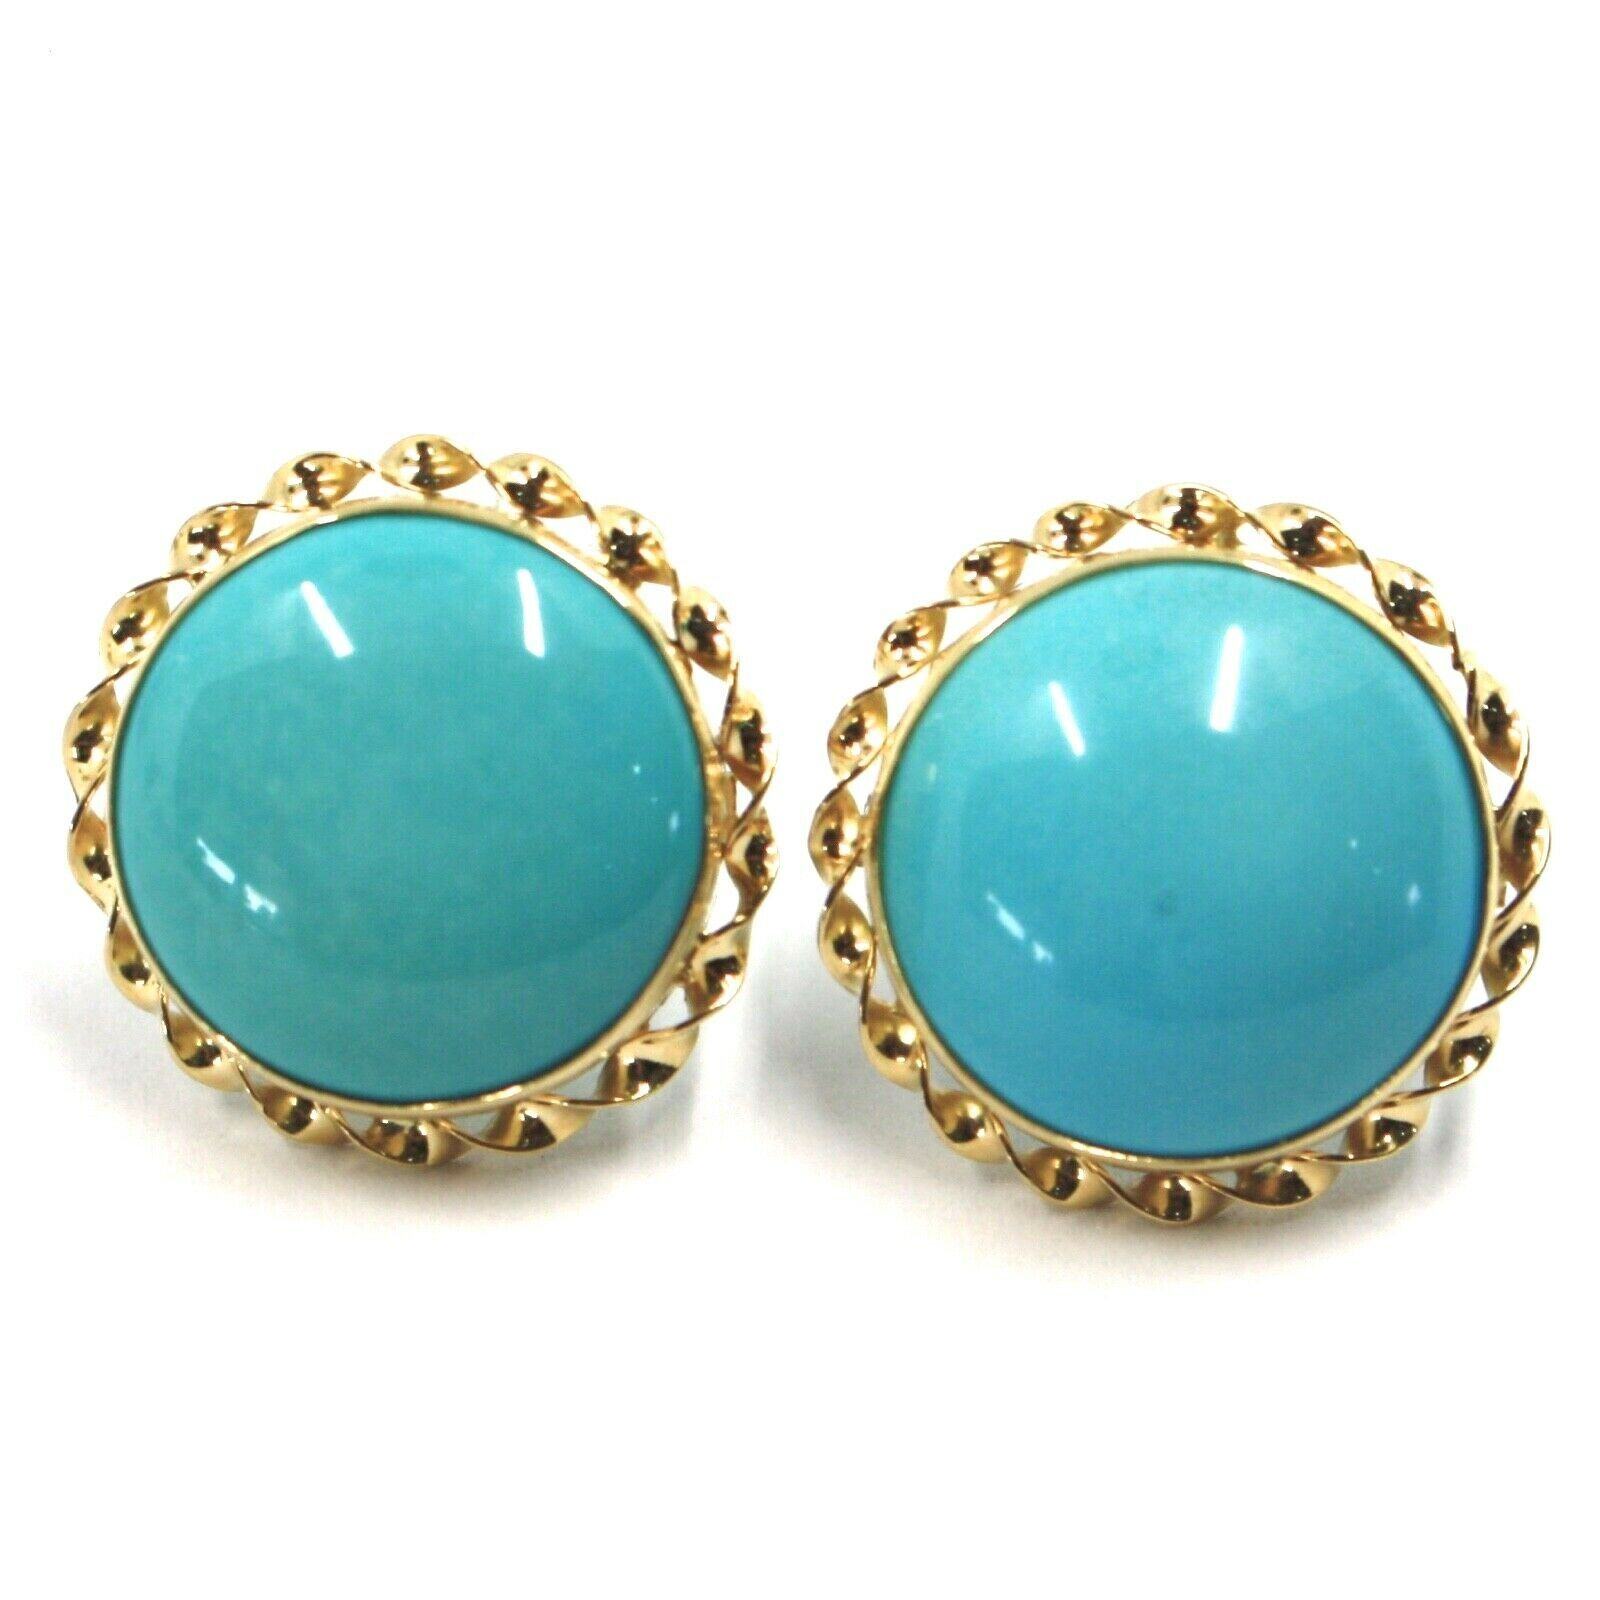 18K YELLOW GOLD EARRINGS, CABOCHON ROUND TURQUOISE SPIRAL FRAME, MADE IN ITALY